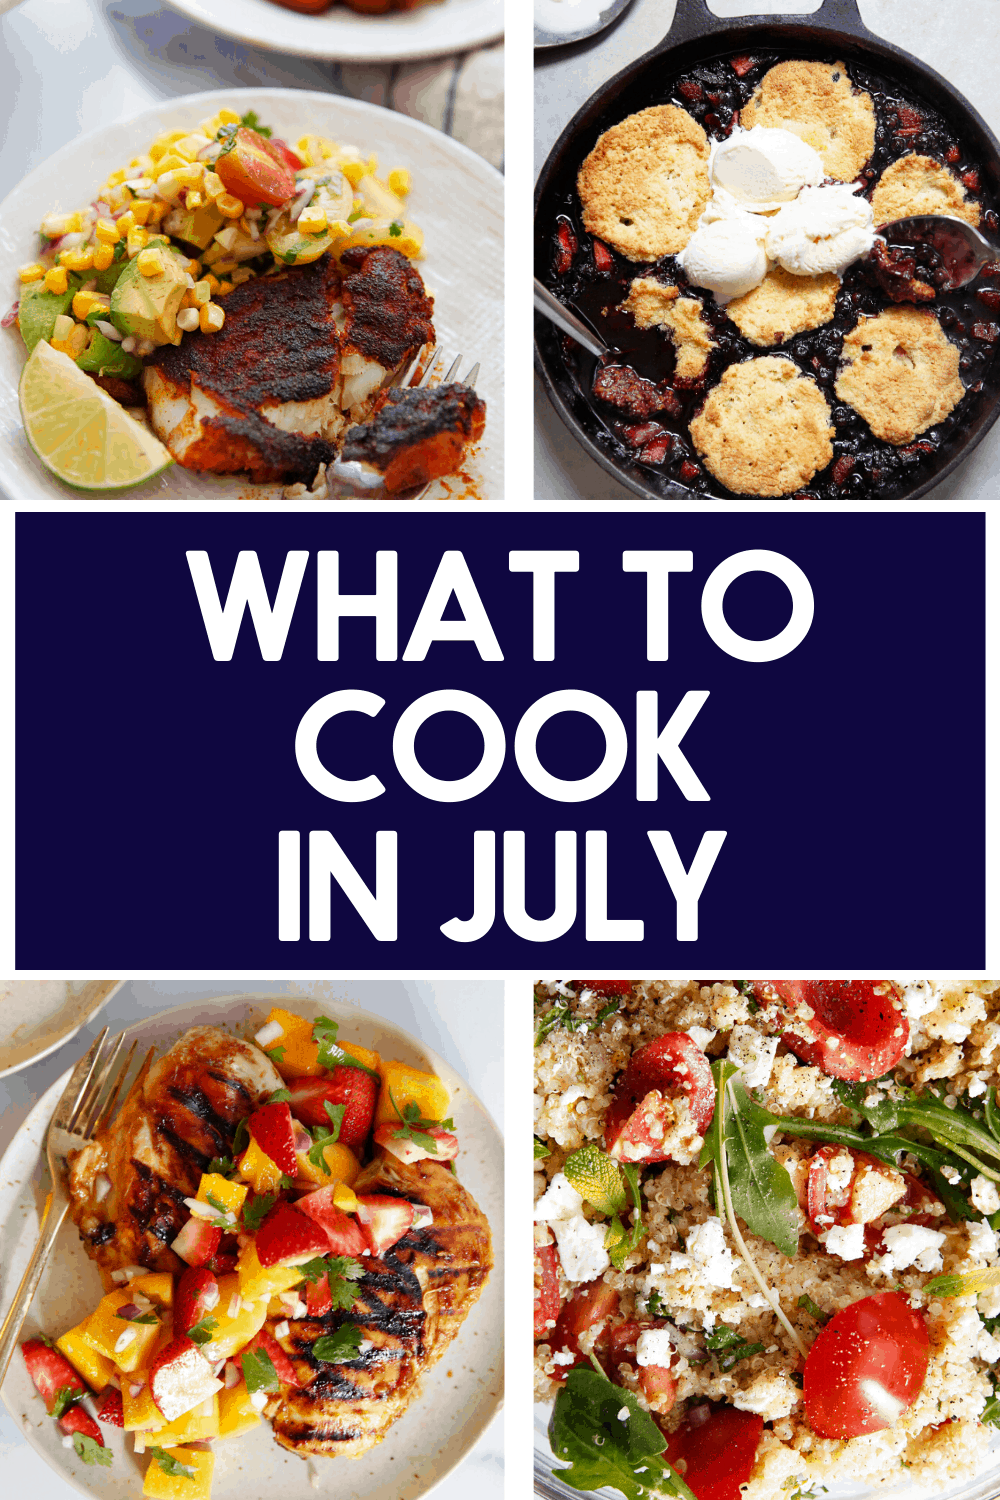 Recipes to cook in July.